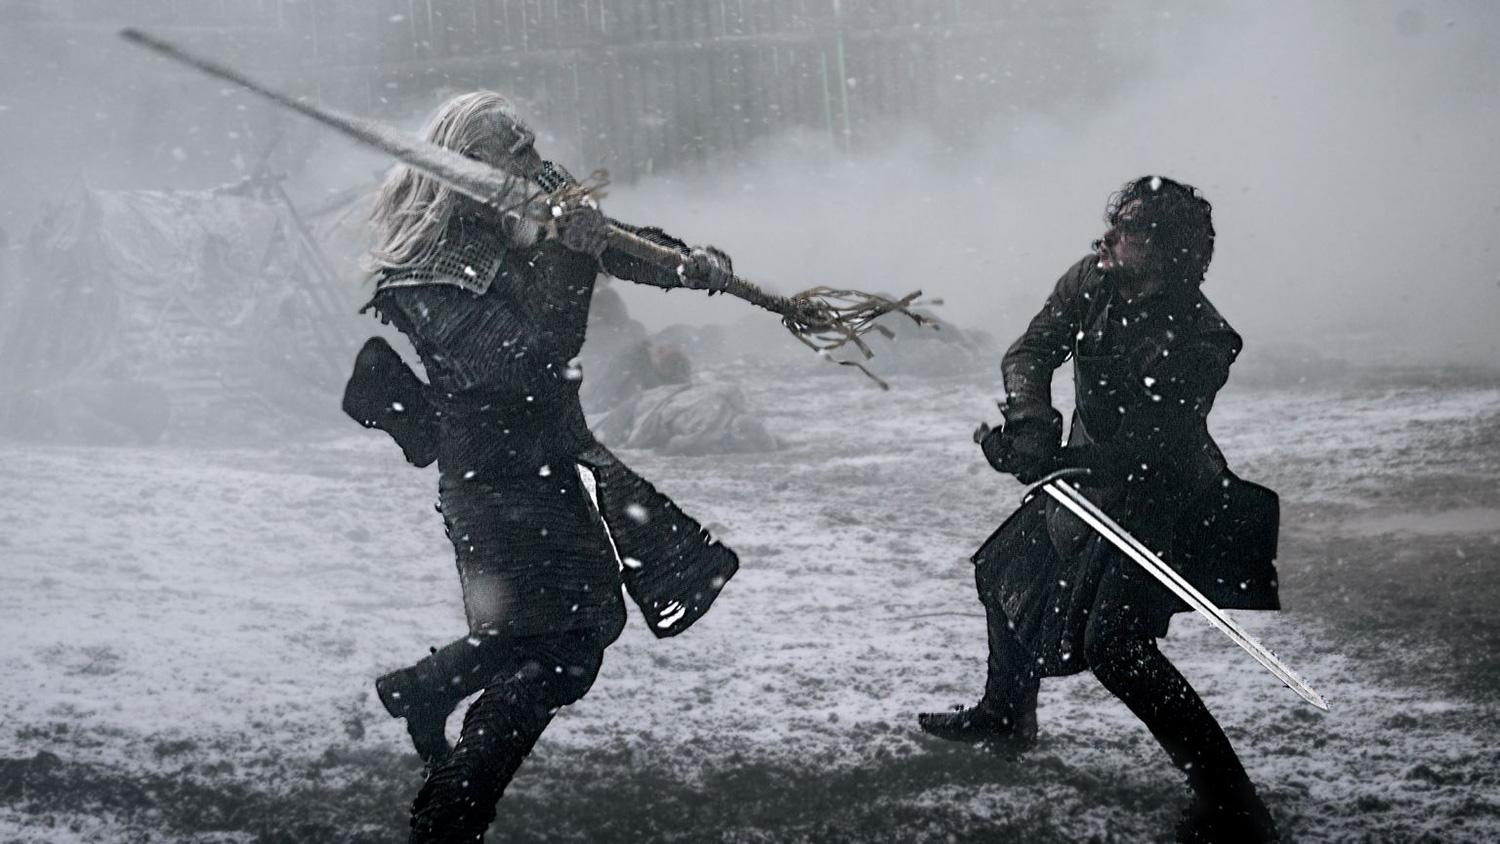 game-of-thrones-recap-swordfight-1500x844.jpg